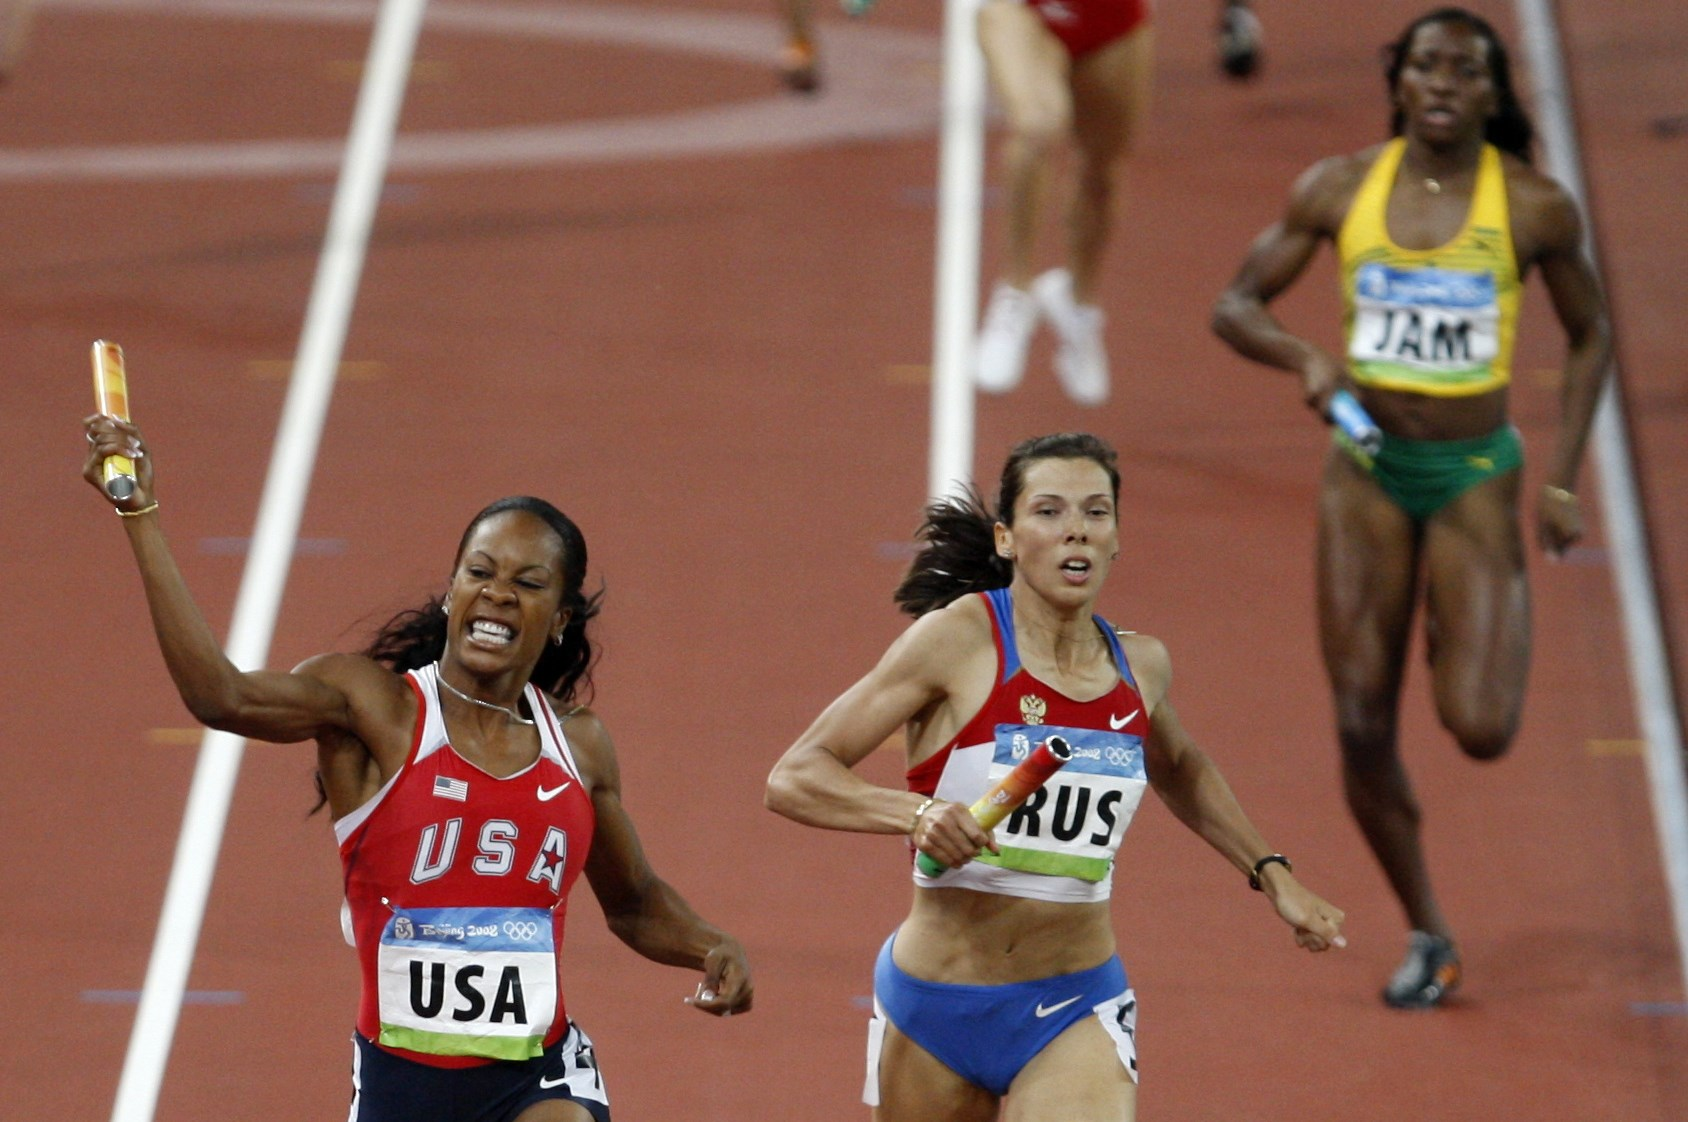 FILE - In this Aug. 23, 2008 file photo, United States' Sanya Richards, left, celebrates winning the women's 4x400-meter final at the Beijing 2008 Olympics in Beijing, China. At center is Russia's Anastasia Kapachinskaya, who took the silver, but in 2016